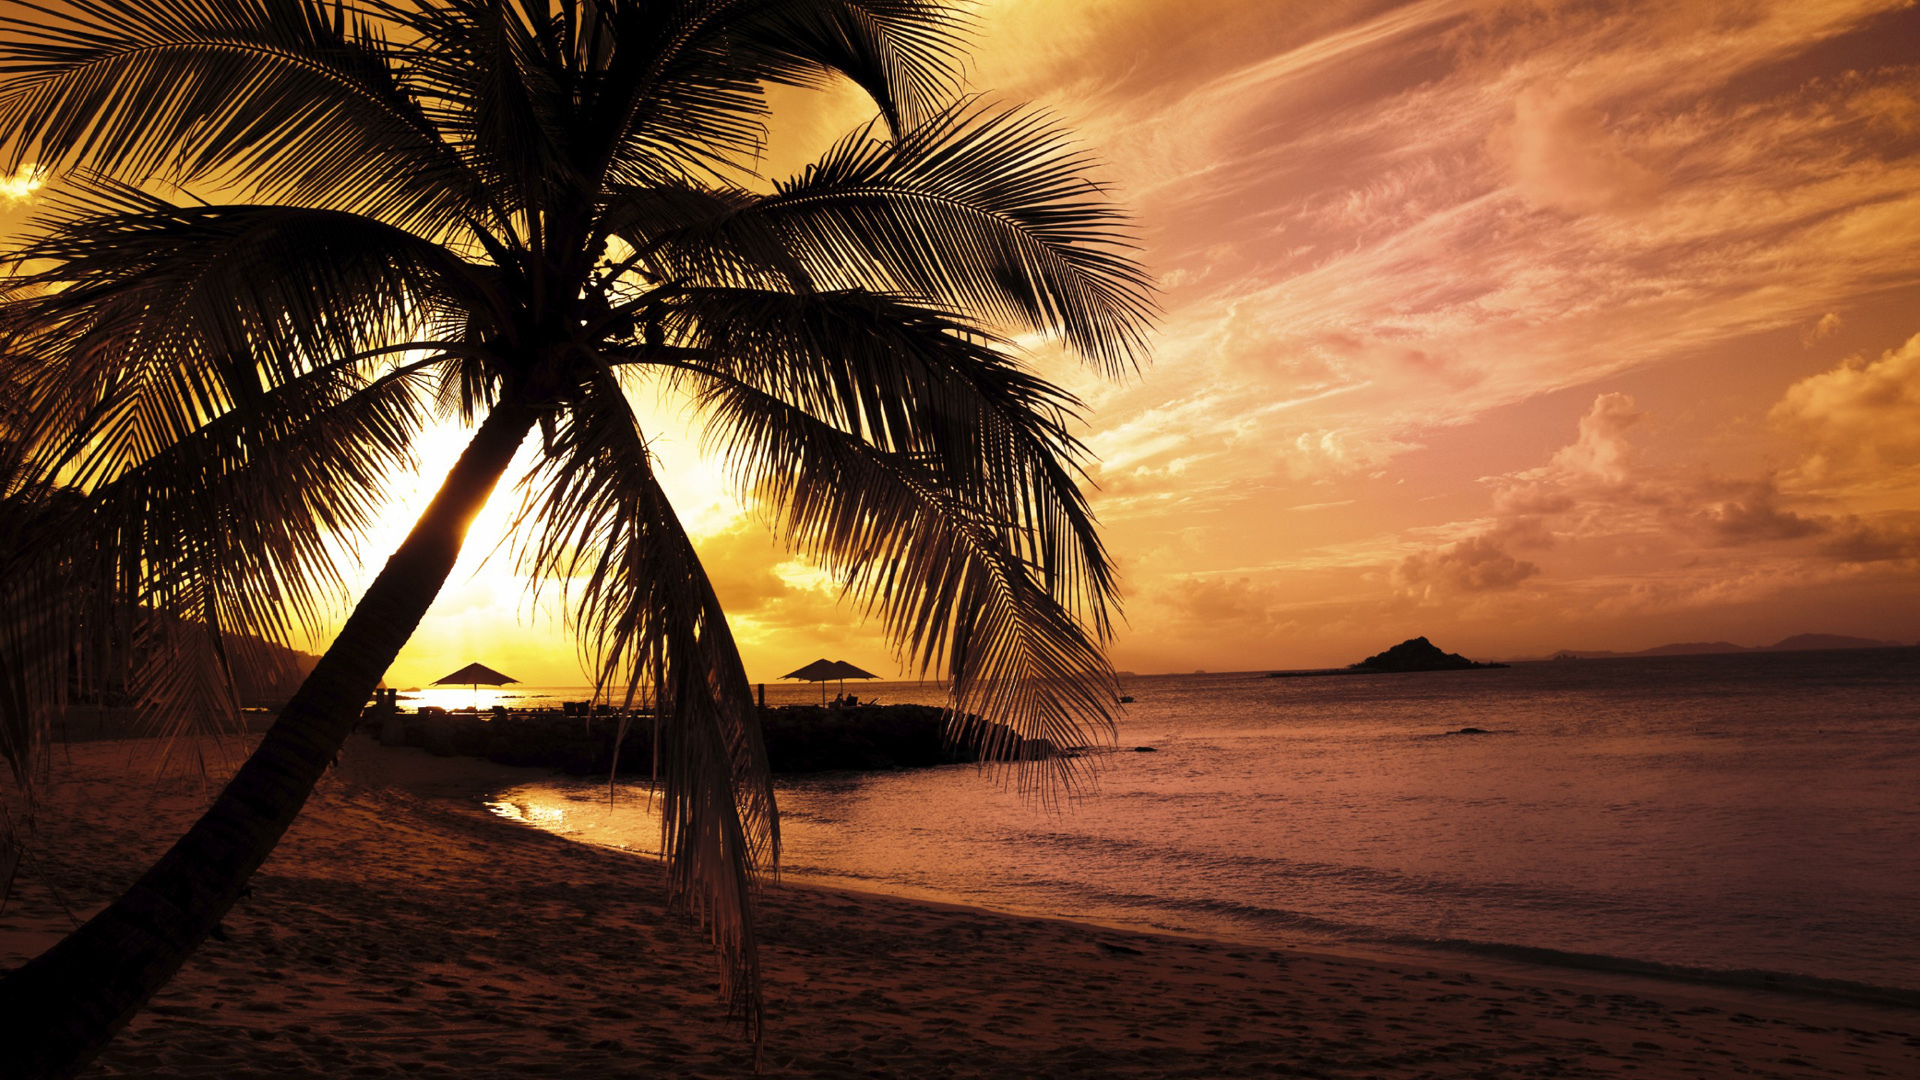 Full HD Nature Wallpapers 1080p Desktop with Sunset in Beach HD 1920x1080